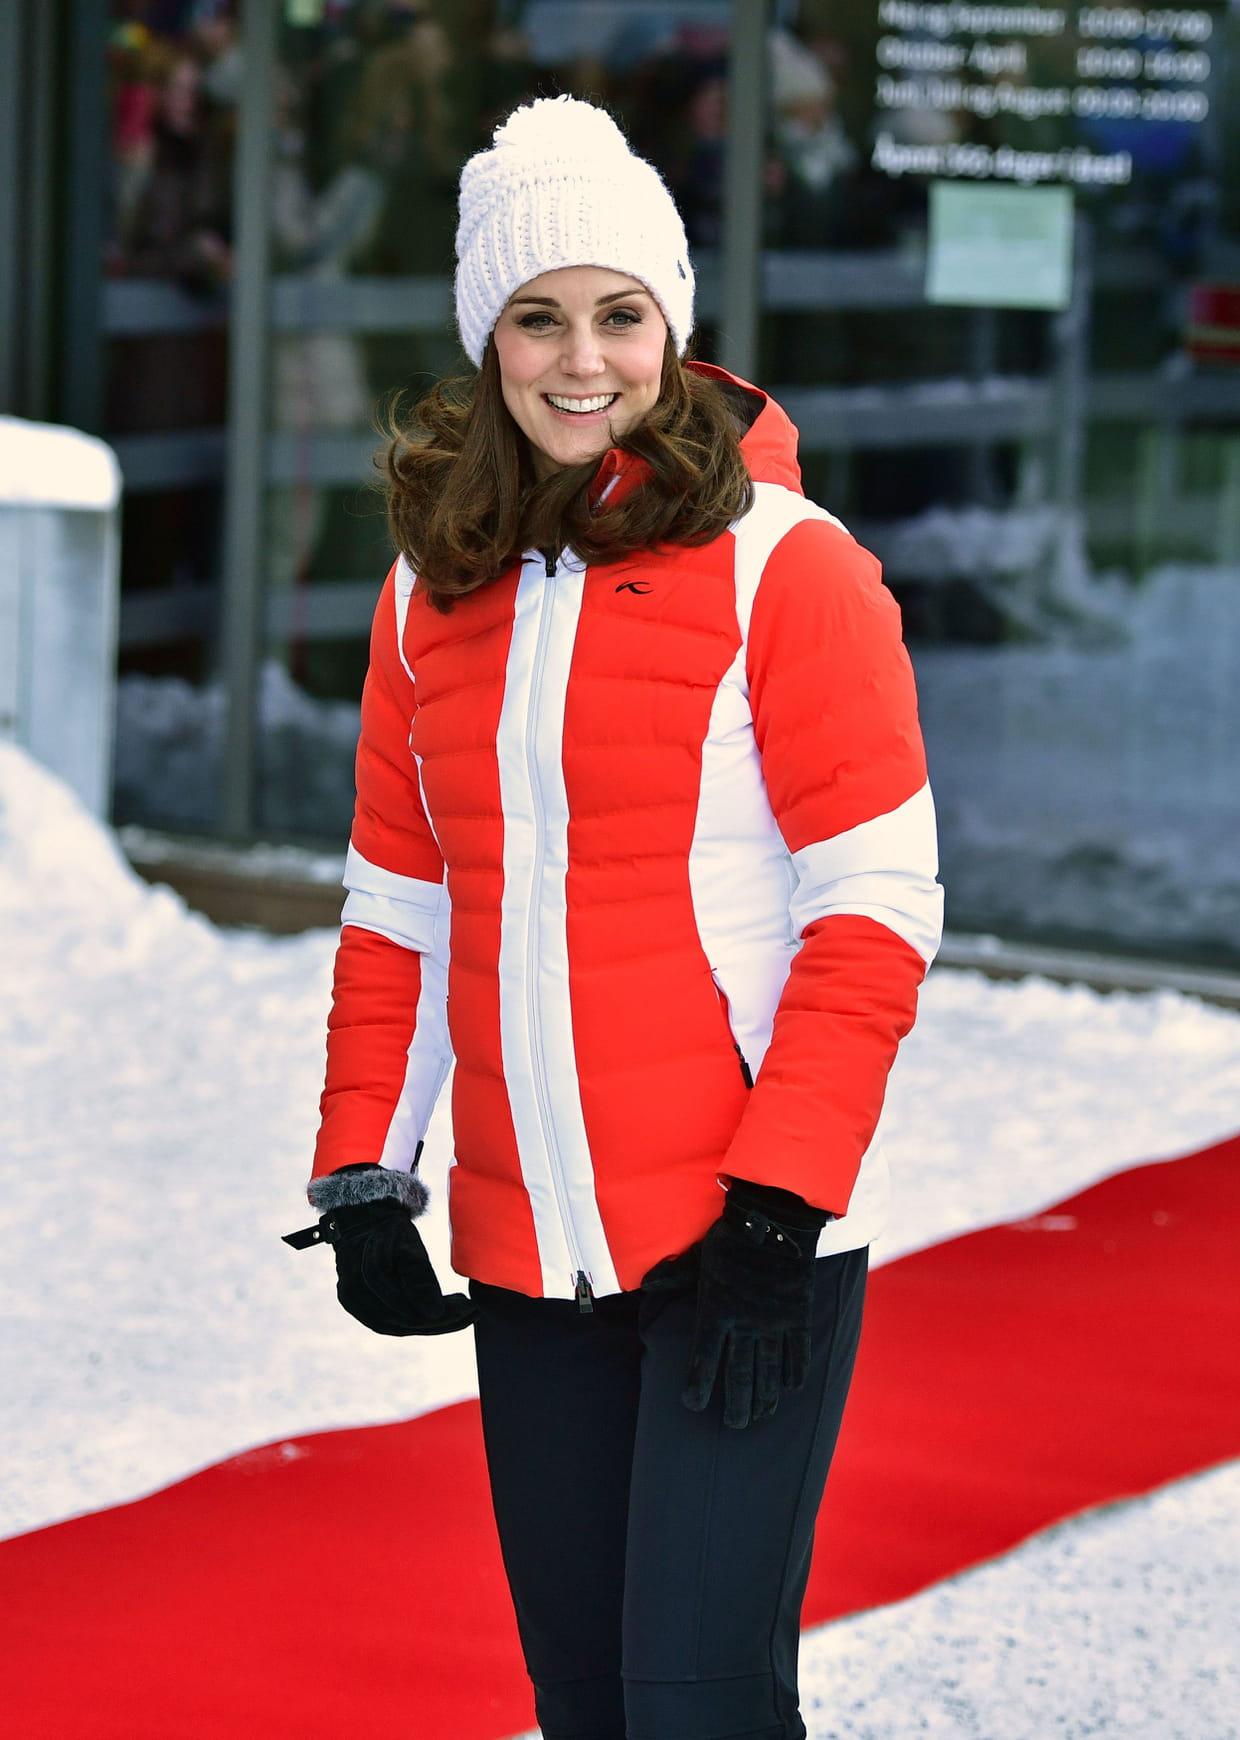 En Doudoune Kate Bicolore En Middleton Doudoune Bicolore Kate Middleton En Doudoune Kate Middleton W2bDIeEYH9